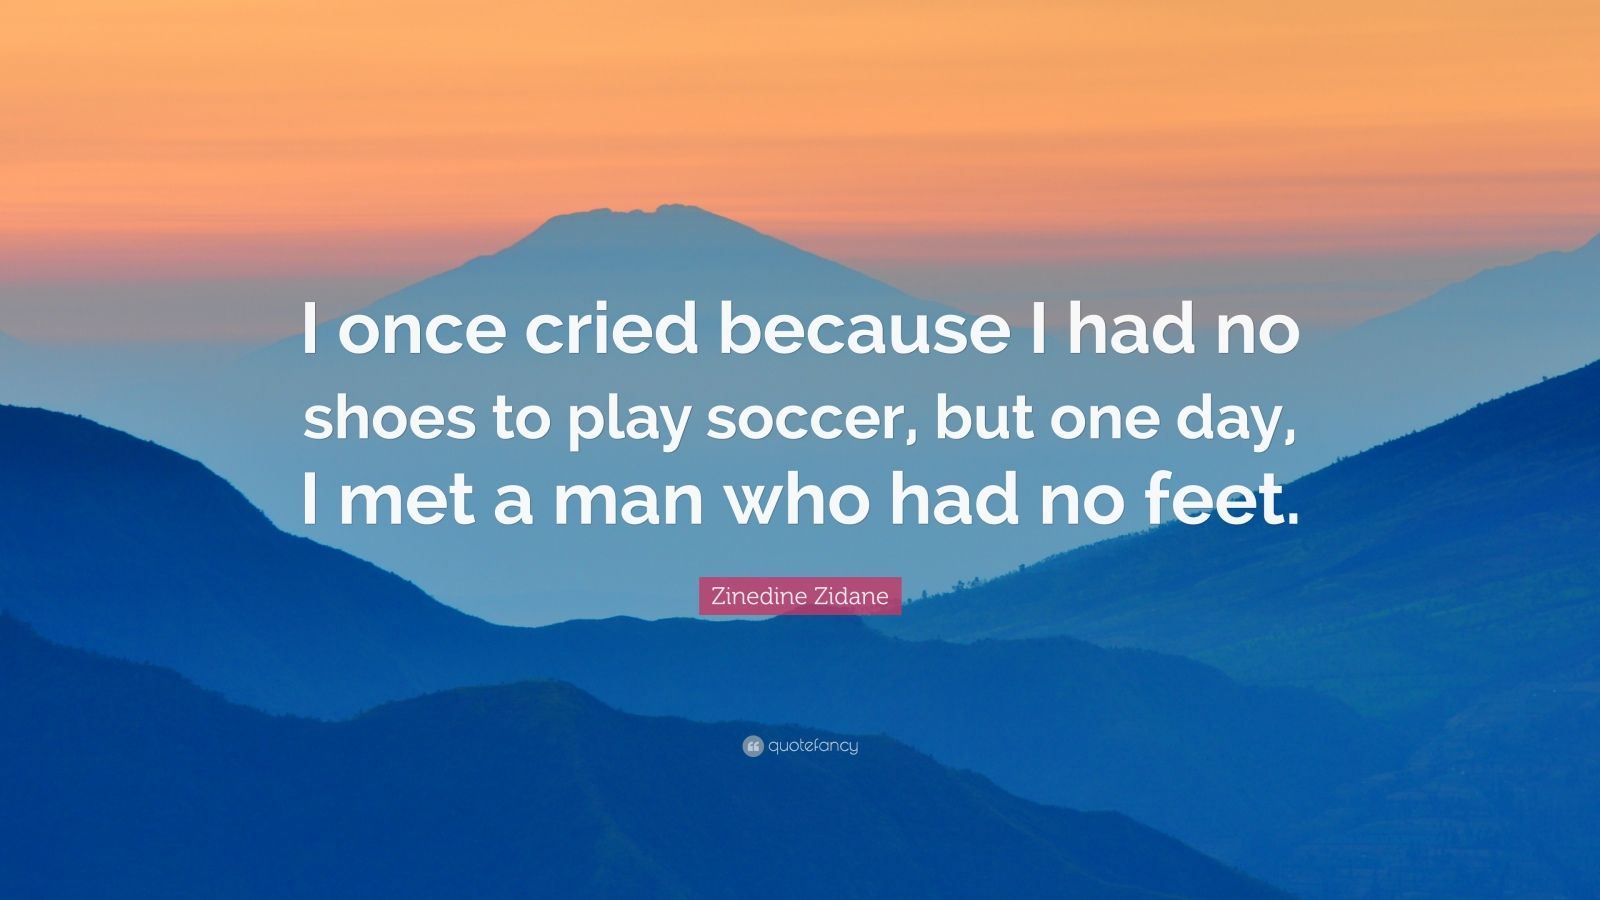 """Zinedine Zidane Quote: """"I once cried because I had no shoes to play soccer, but one day, I met a man who had no feet."""""""